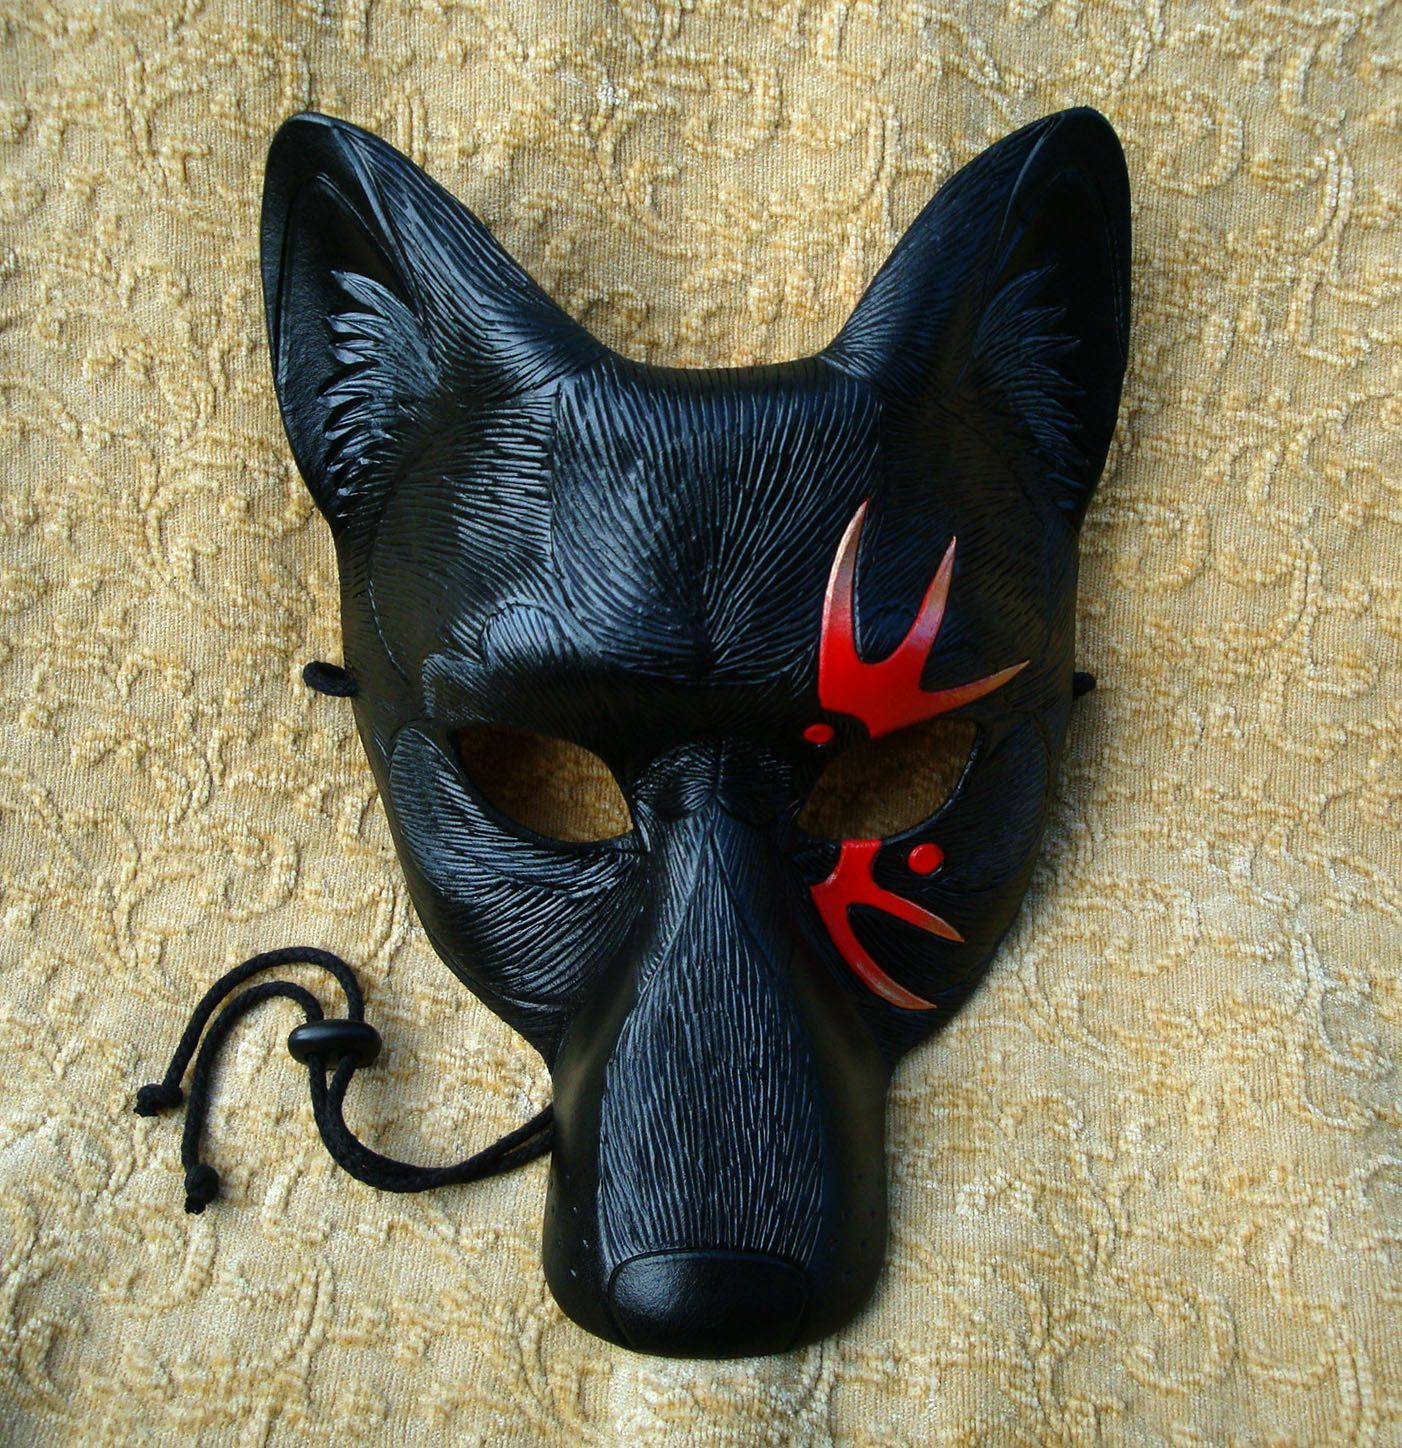 Tattoo Wolf V3 Leather Mask ...handmade original limited edition leather mask by Merimask Designs.